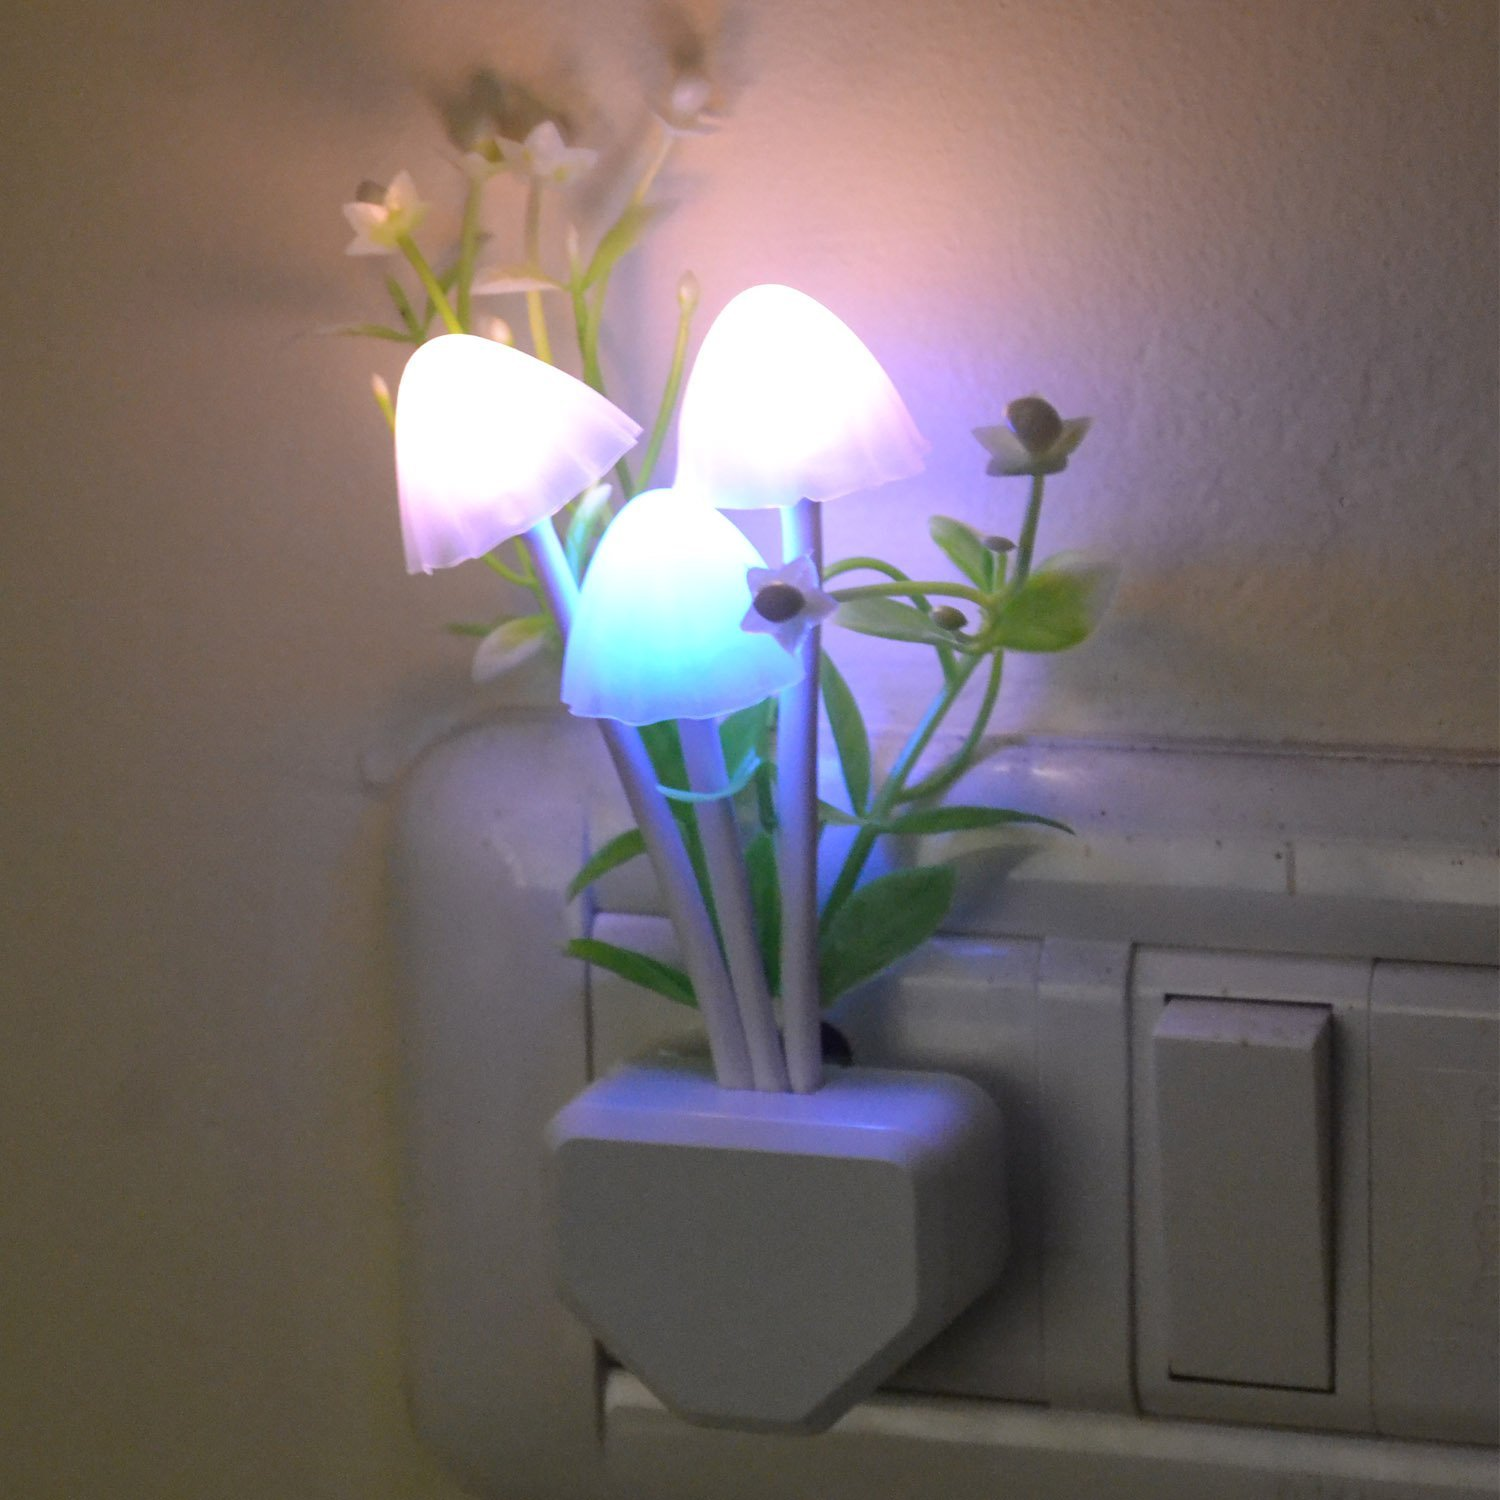 Wall night lamp online india - Novicz Led Mushroom Night Lamp Wall Light Day Night Sensor Control Bed Lamp Bedroom Lamp